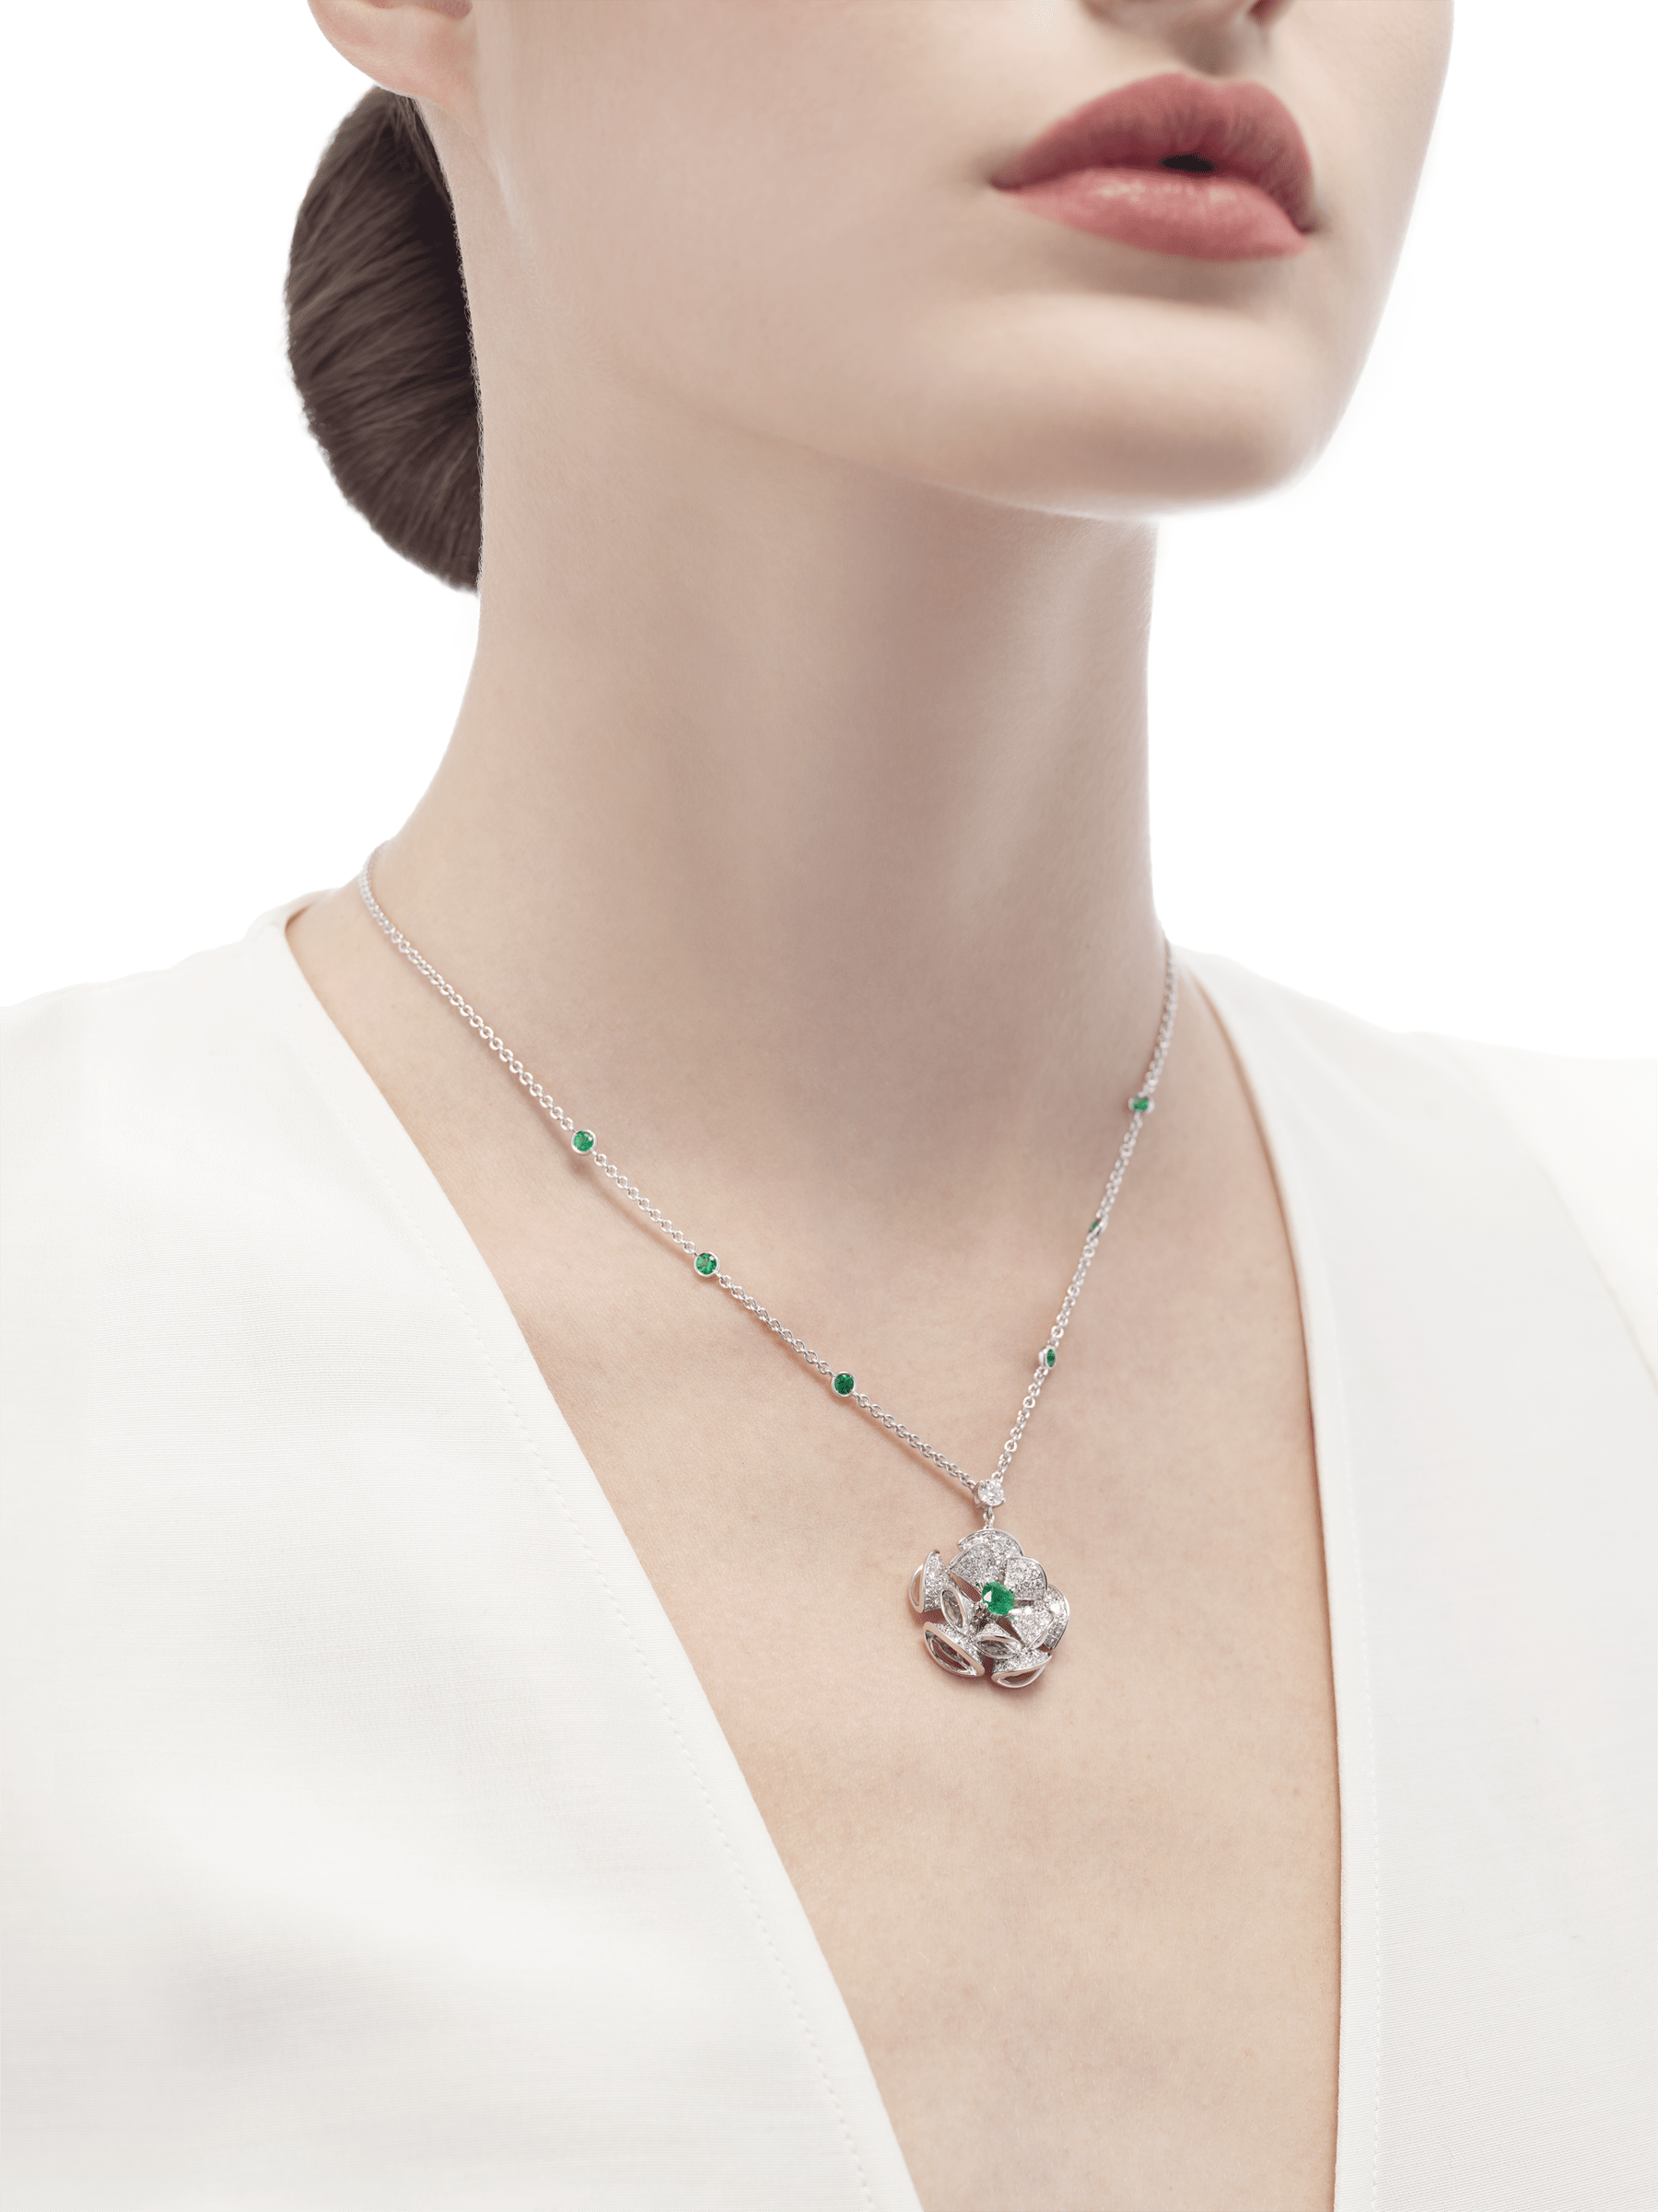 DIVAS' DREAM necklace in 18 kt white gold with chain set with emeralds and a diamond, and with a pendant set with a central enerald and pavé diamonds. 352626 image 4